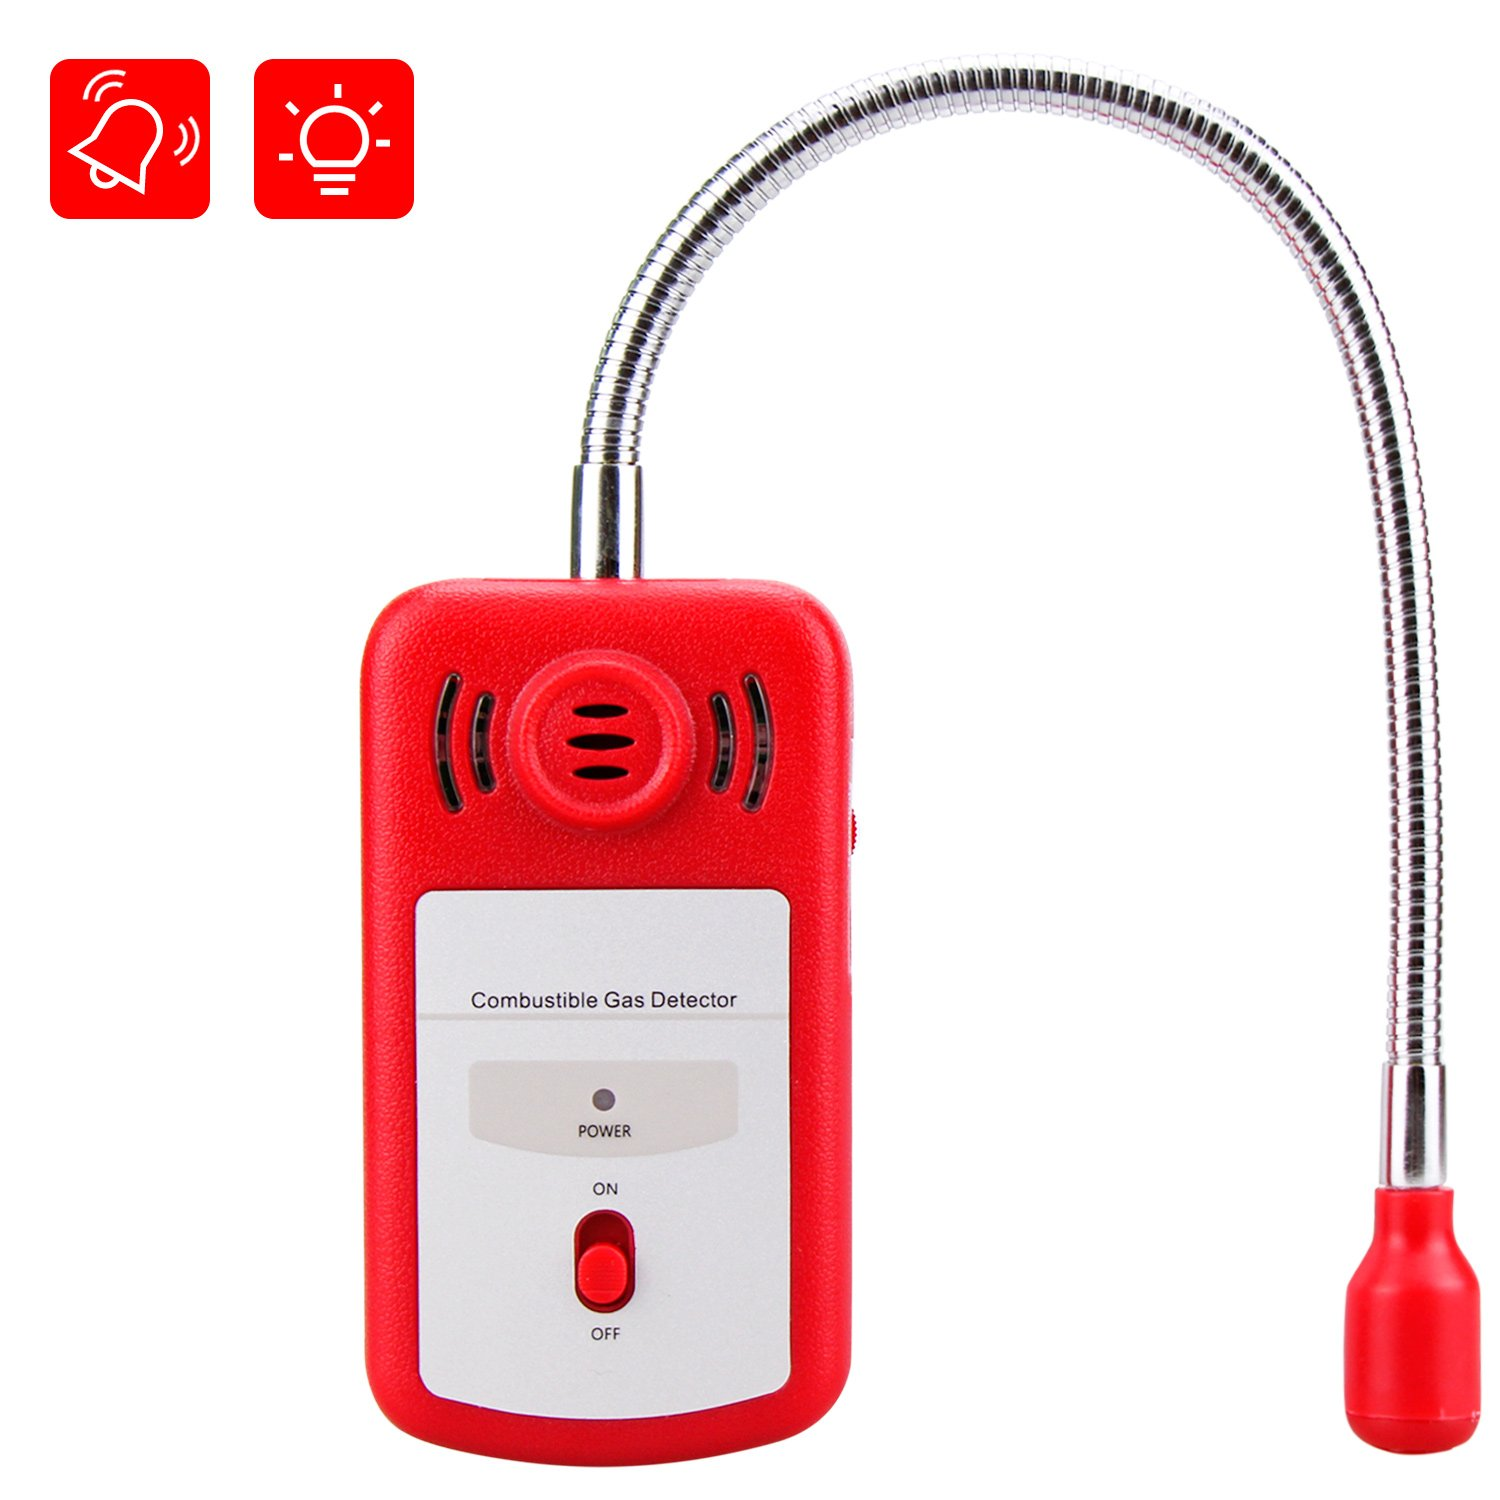 Gas Leak Detector, Sungwoo Combustible Gas Detector, Natural Propane Methane Gas Leak Detector Sniffer with Audible & Visual Alarm Sensor Monitor for Home & Chemical Plant Safety (RED)